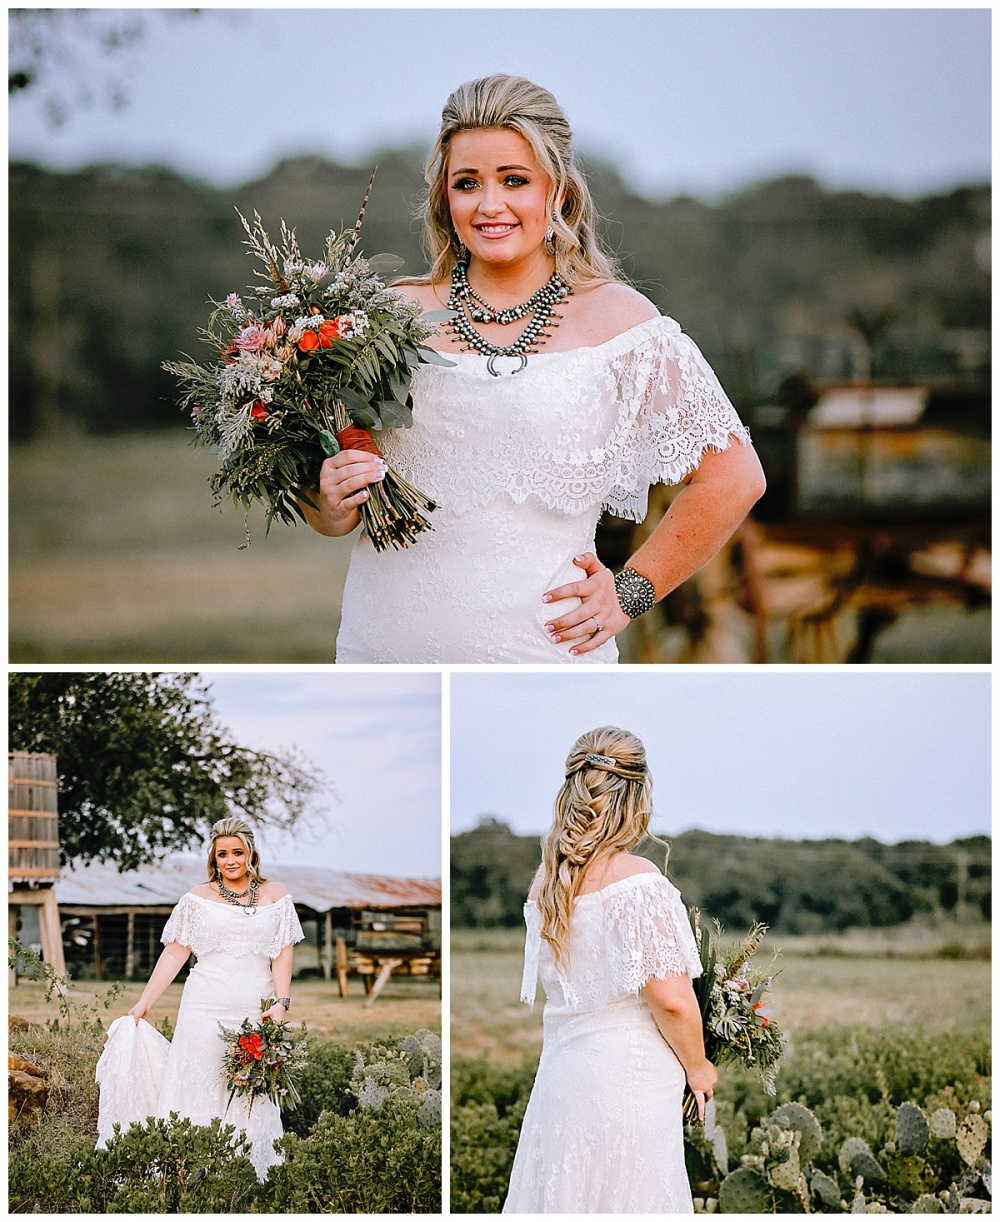 Carly-Barton-Photography-Whitehall-Polley-Mansion-Sutherland-Springs-Texas-Wedding-Bridals-Caitlin_0012.jpg